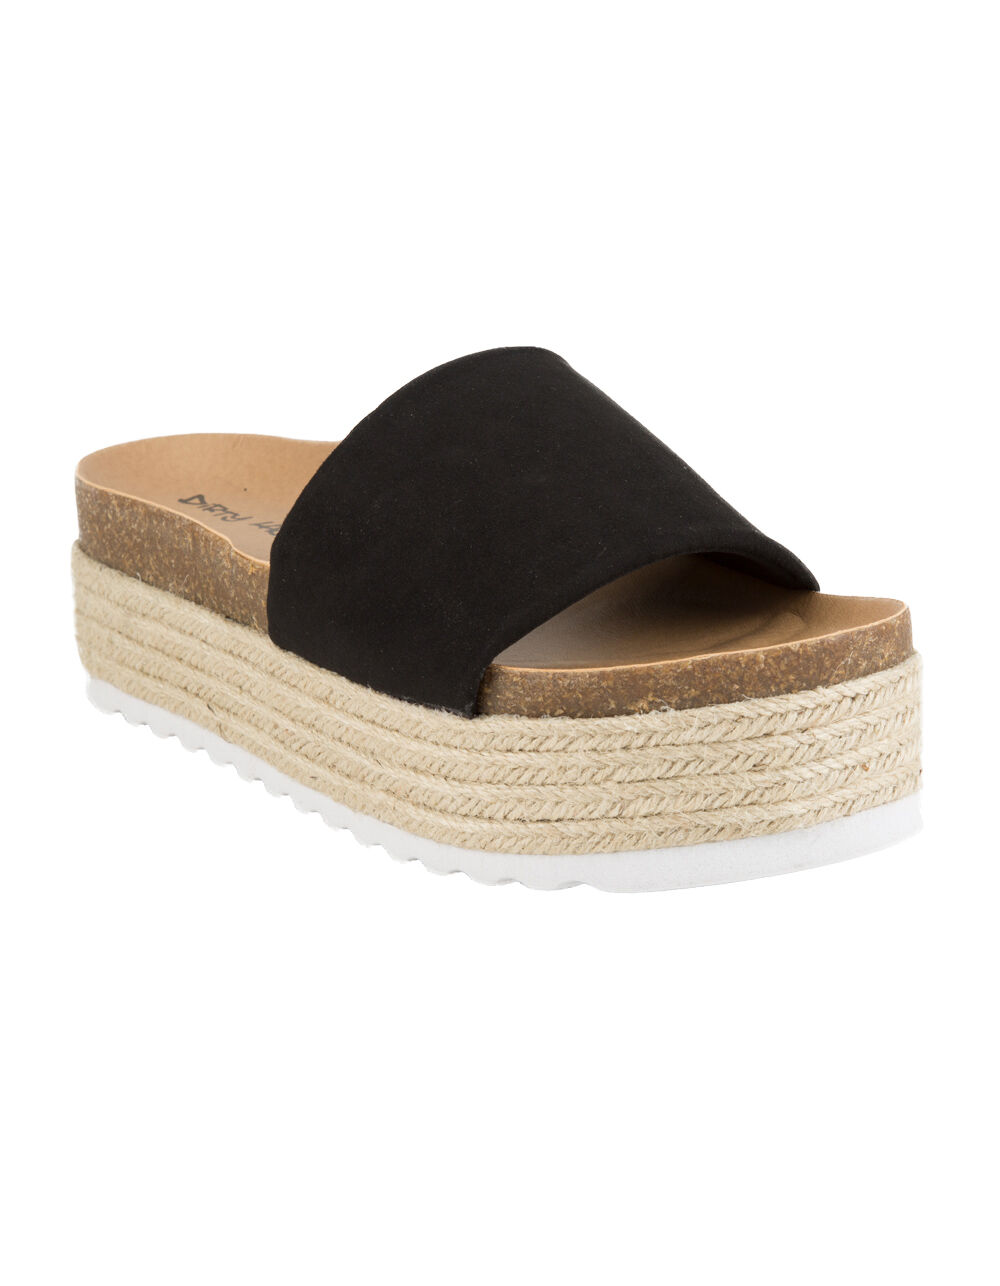 Image of DIRTY LAUNDRY PIPPA ESPADRILLE BLACK PLATFORM SANDALS